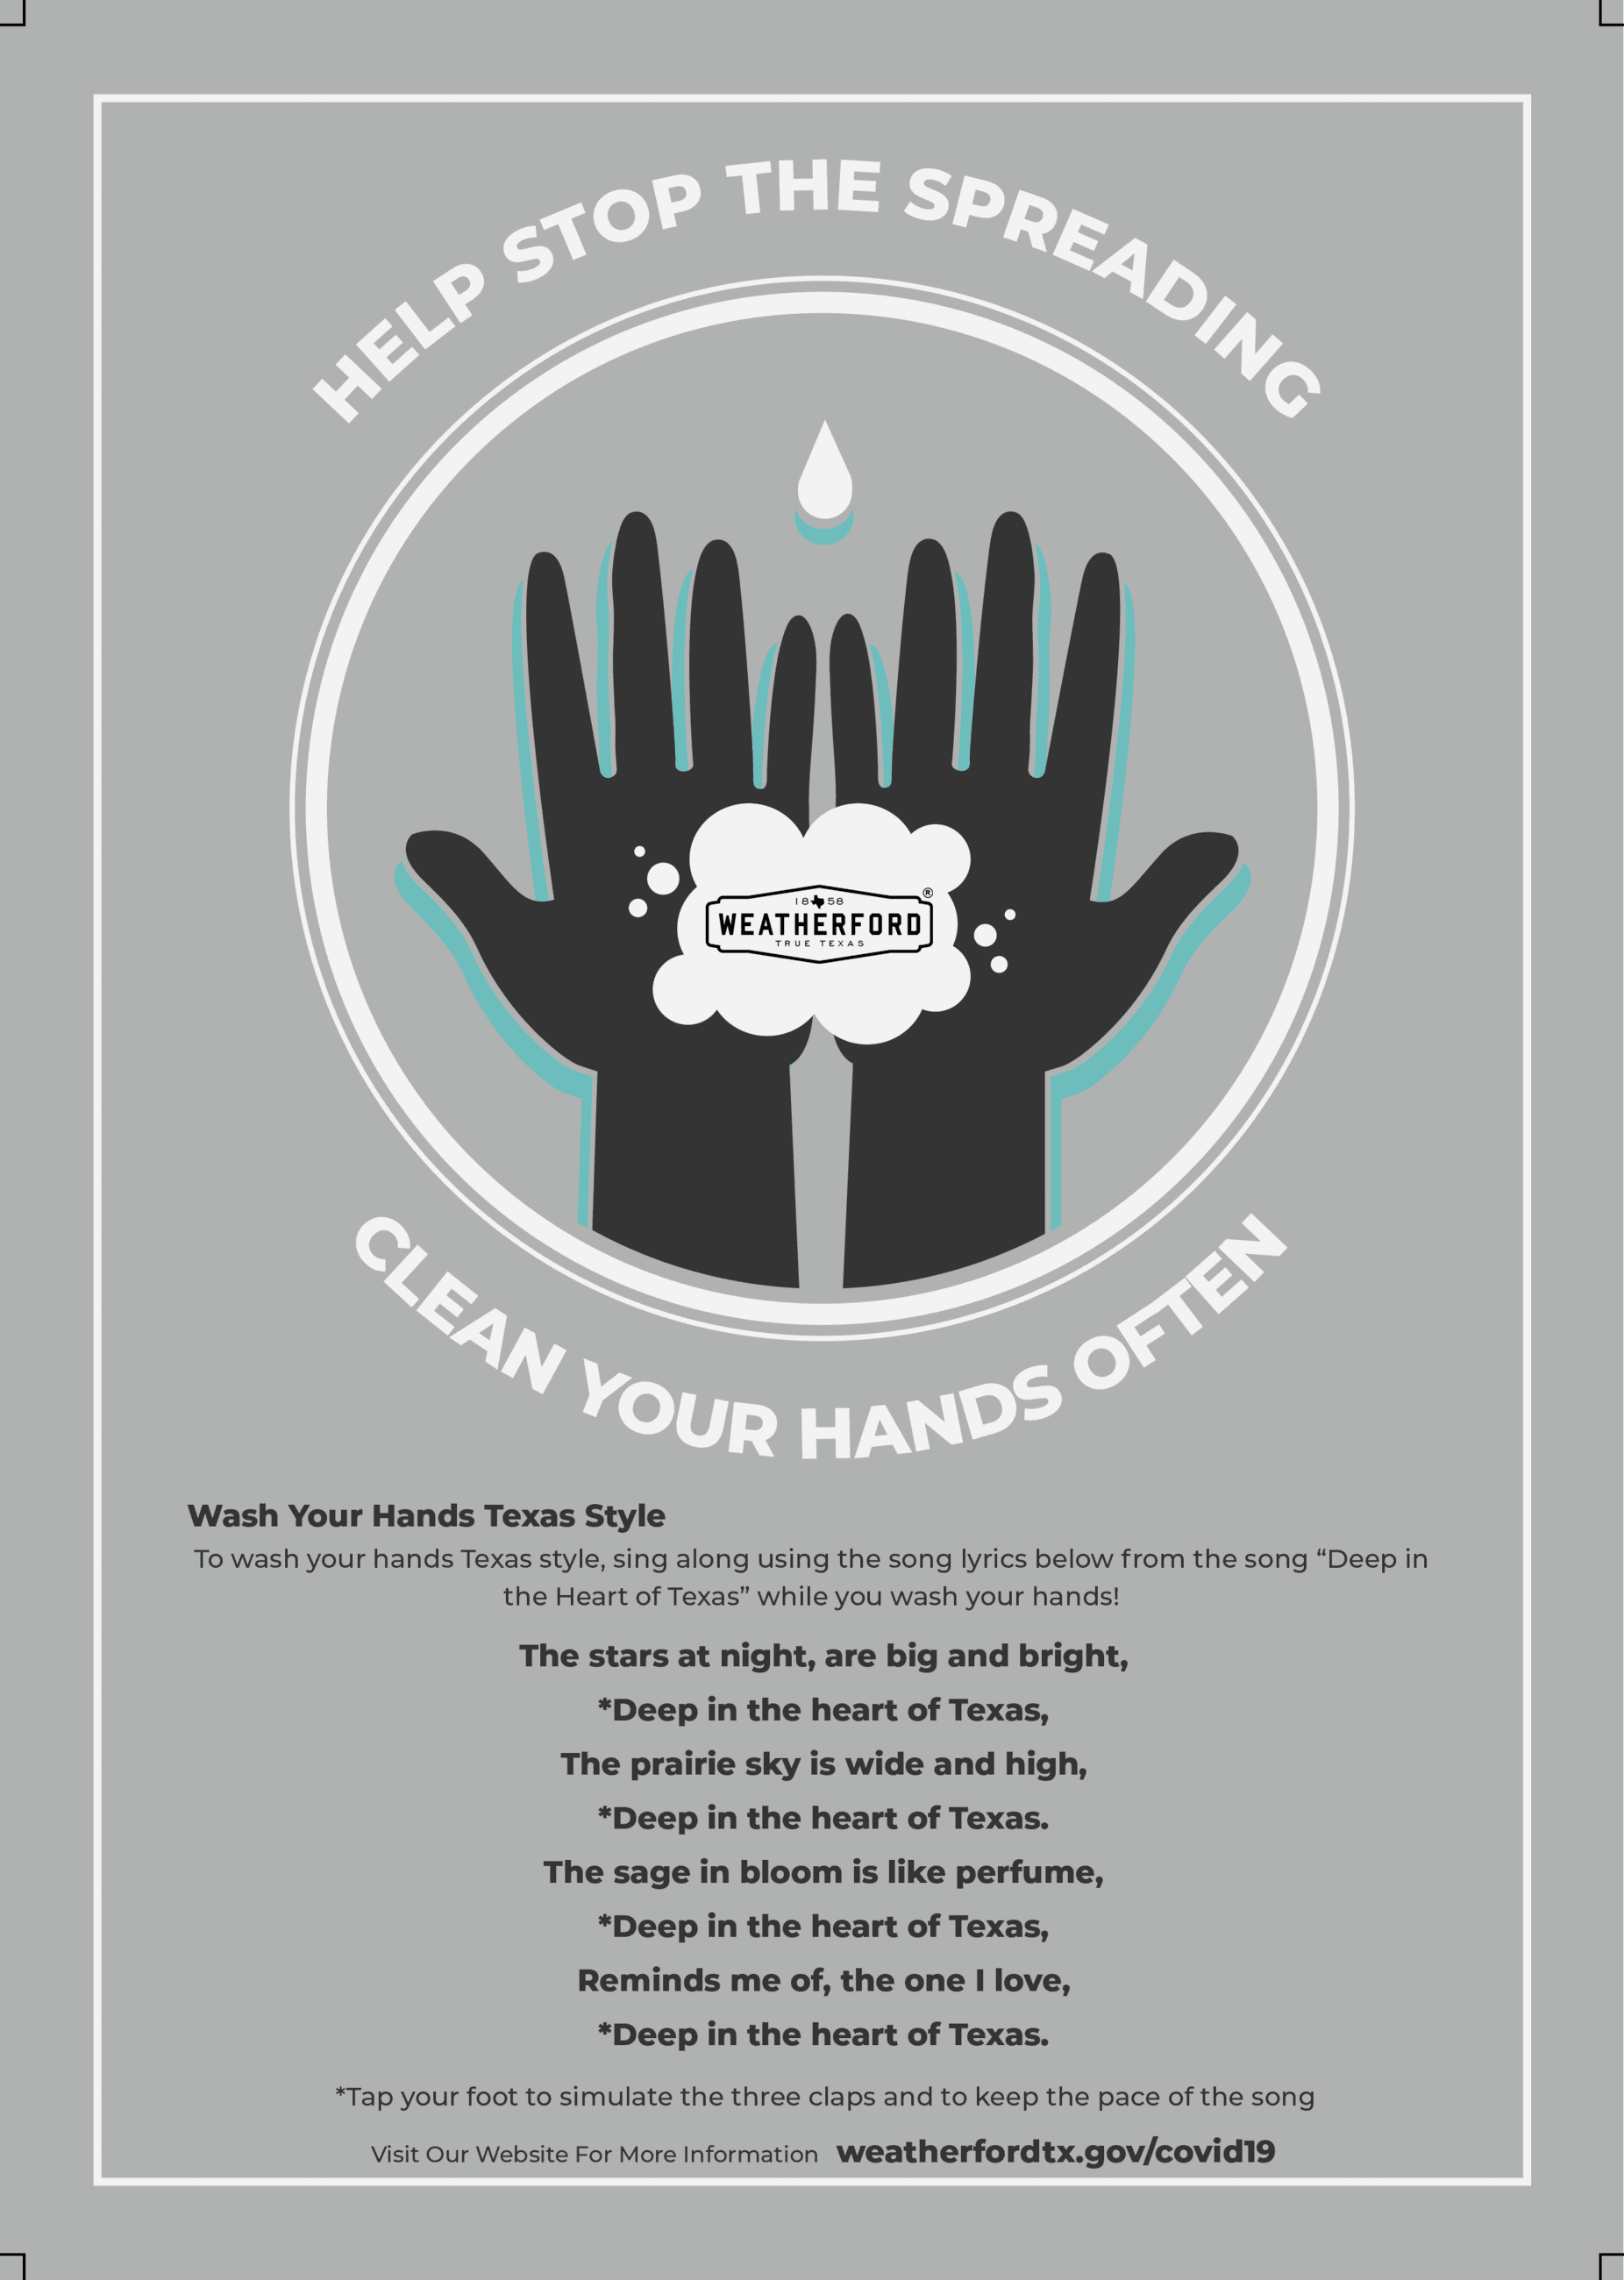 How to Protect Yourself - Handwashing - COVID-19 Deep in the heart of Texas